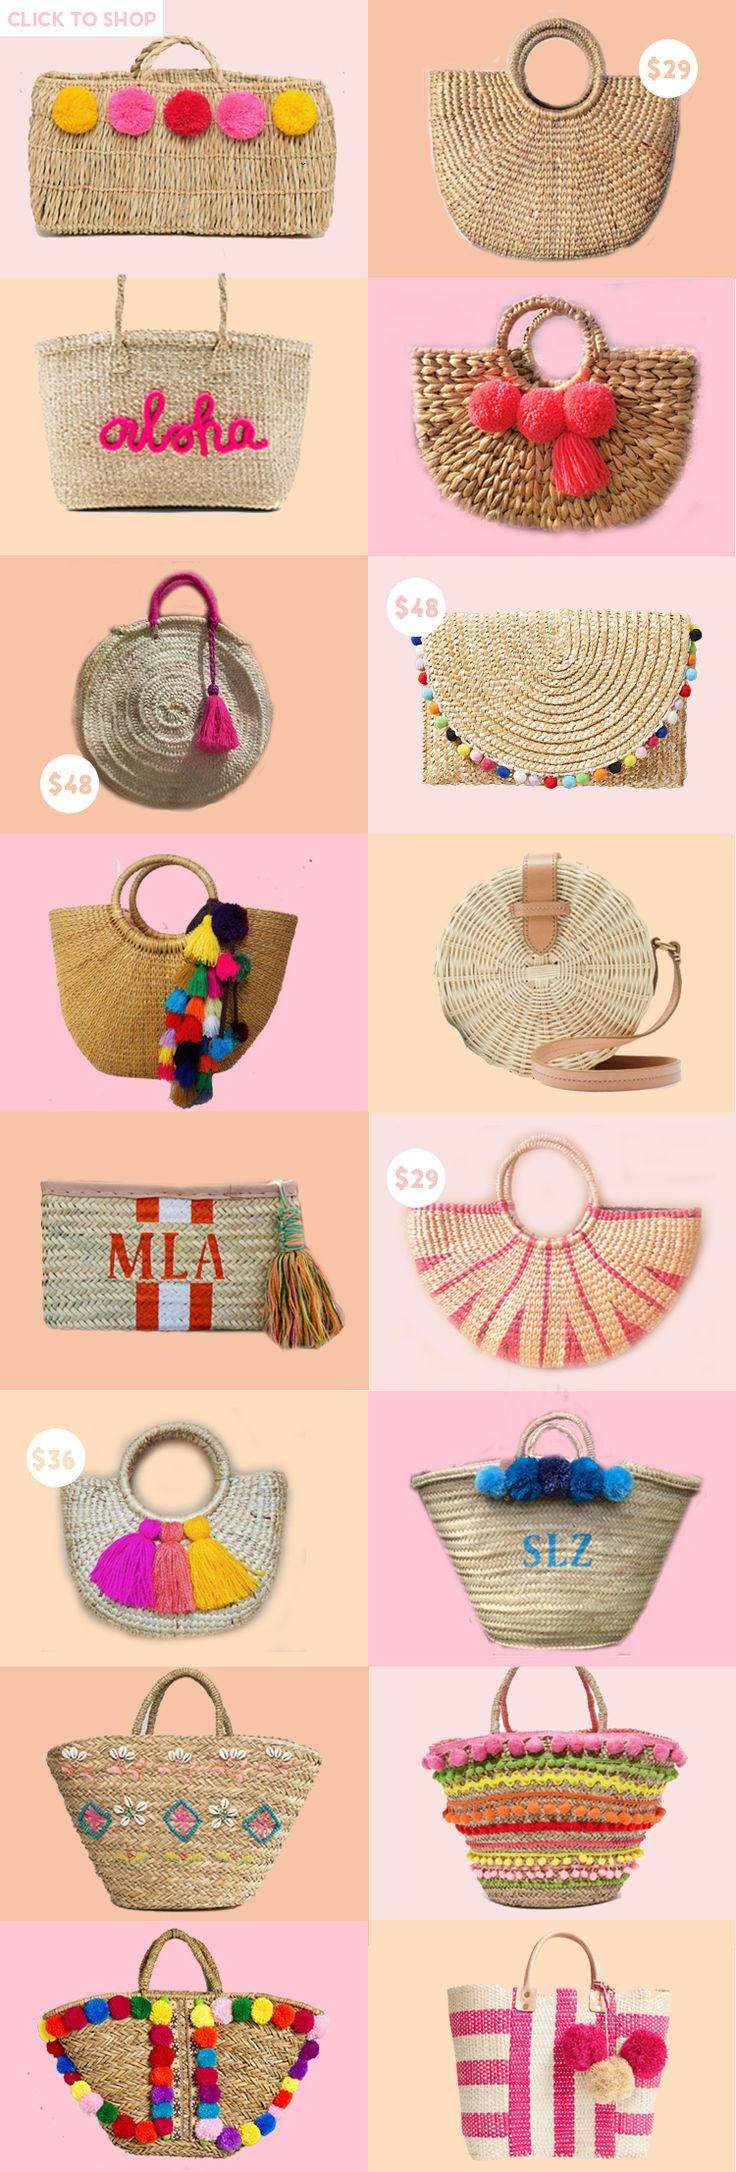 best straw bags of the summer